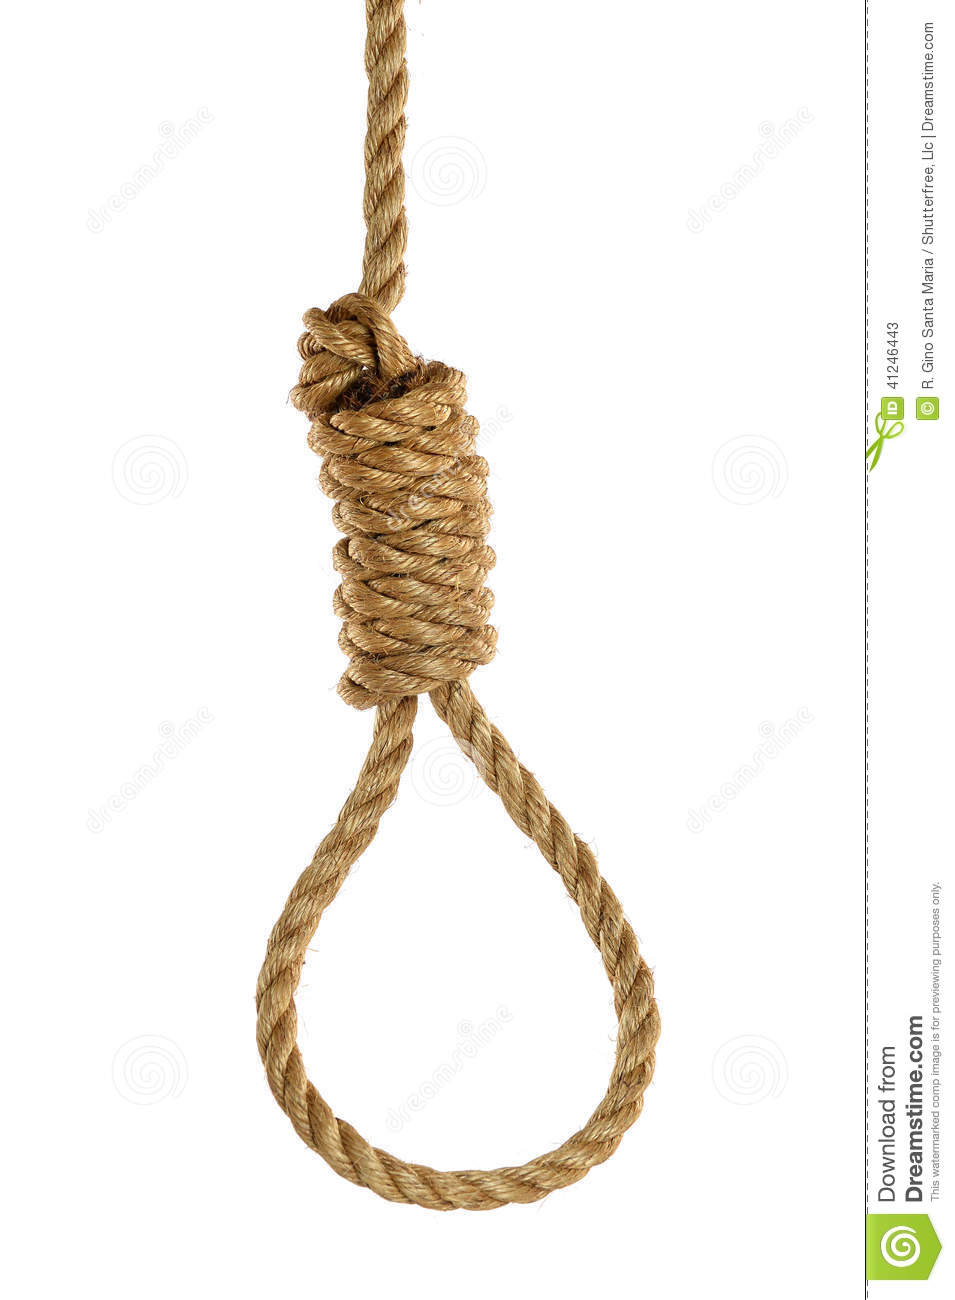 Noose Over White Background Stock Image Image 41246443